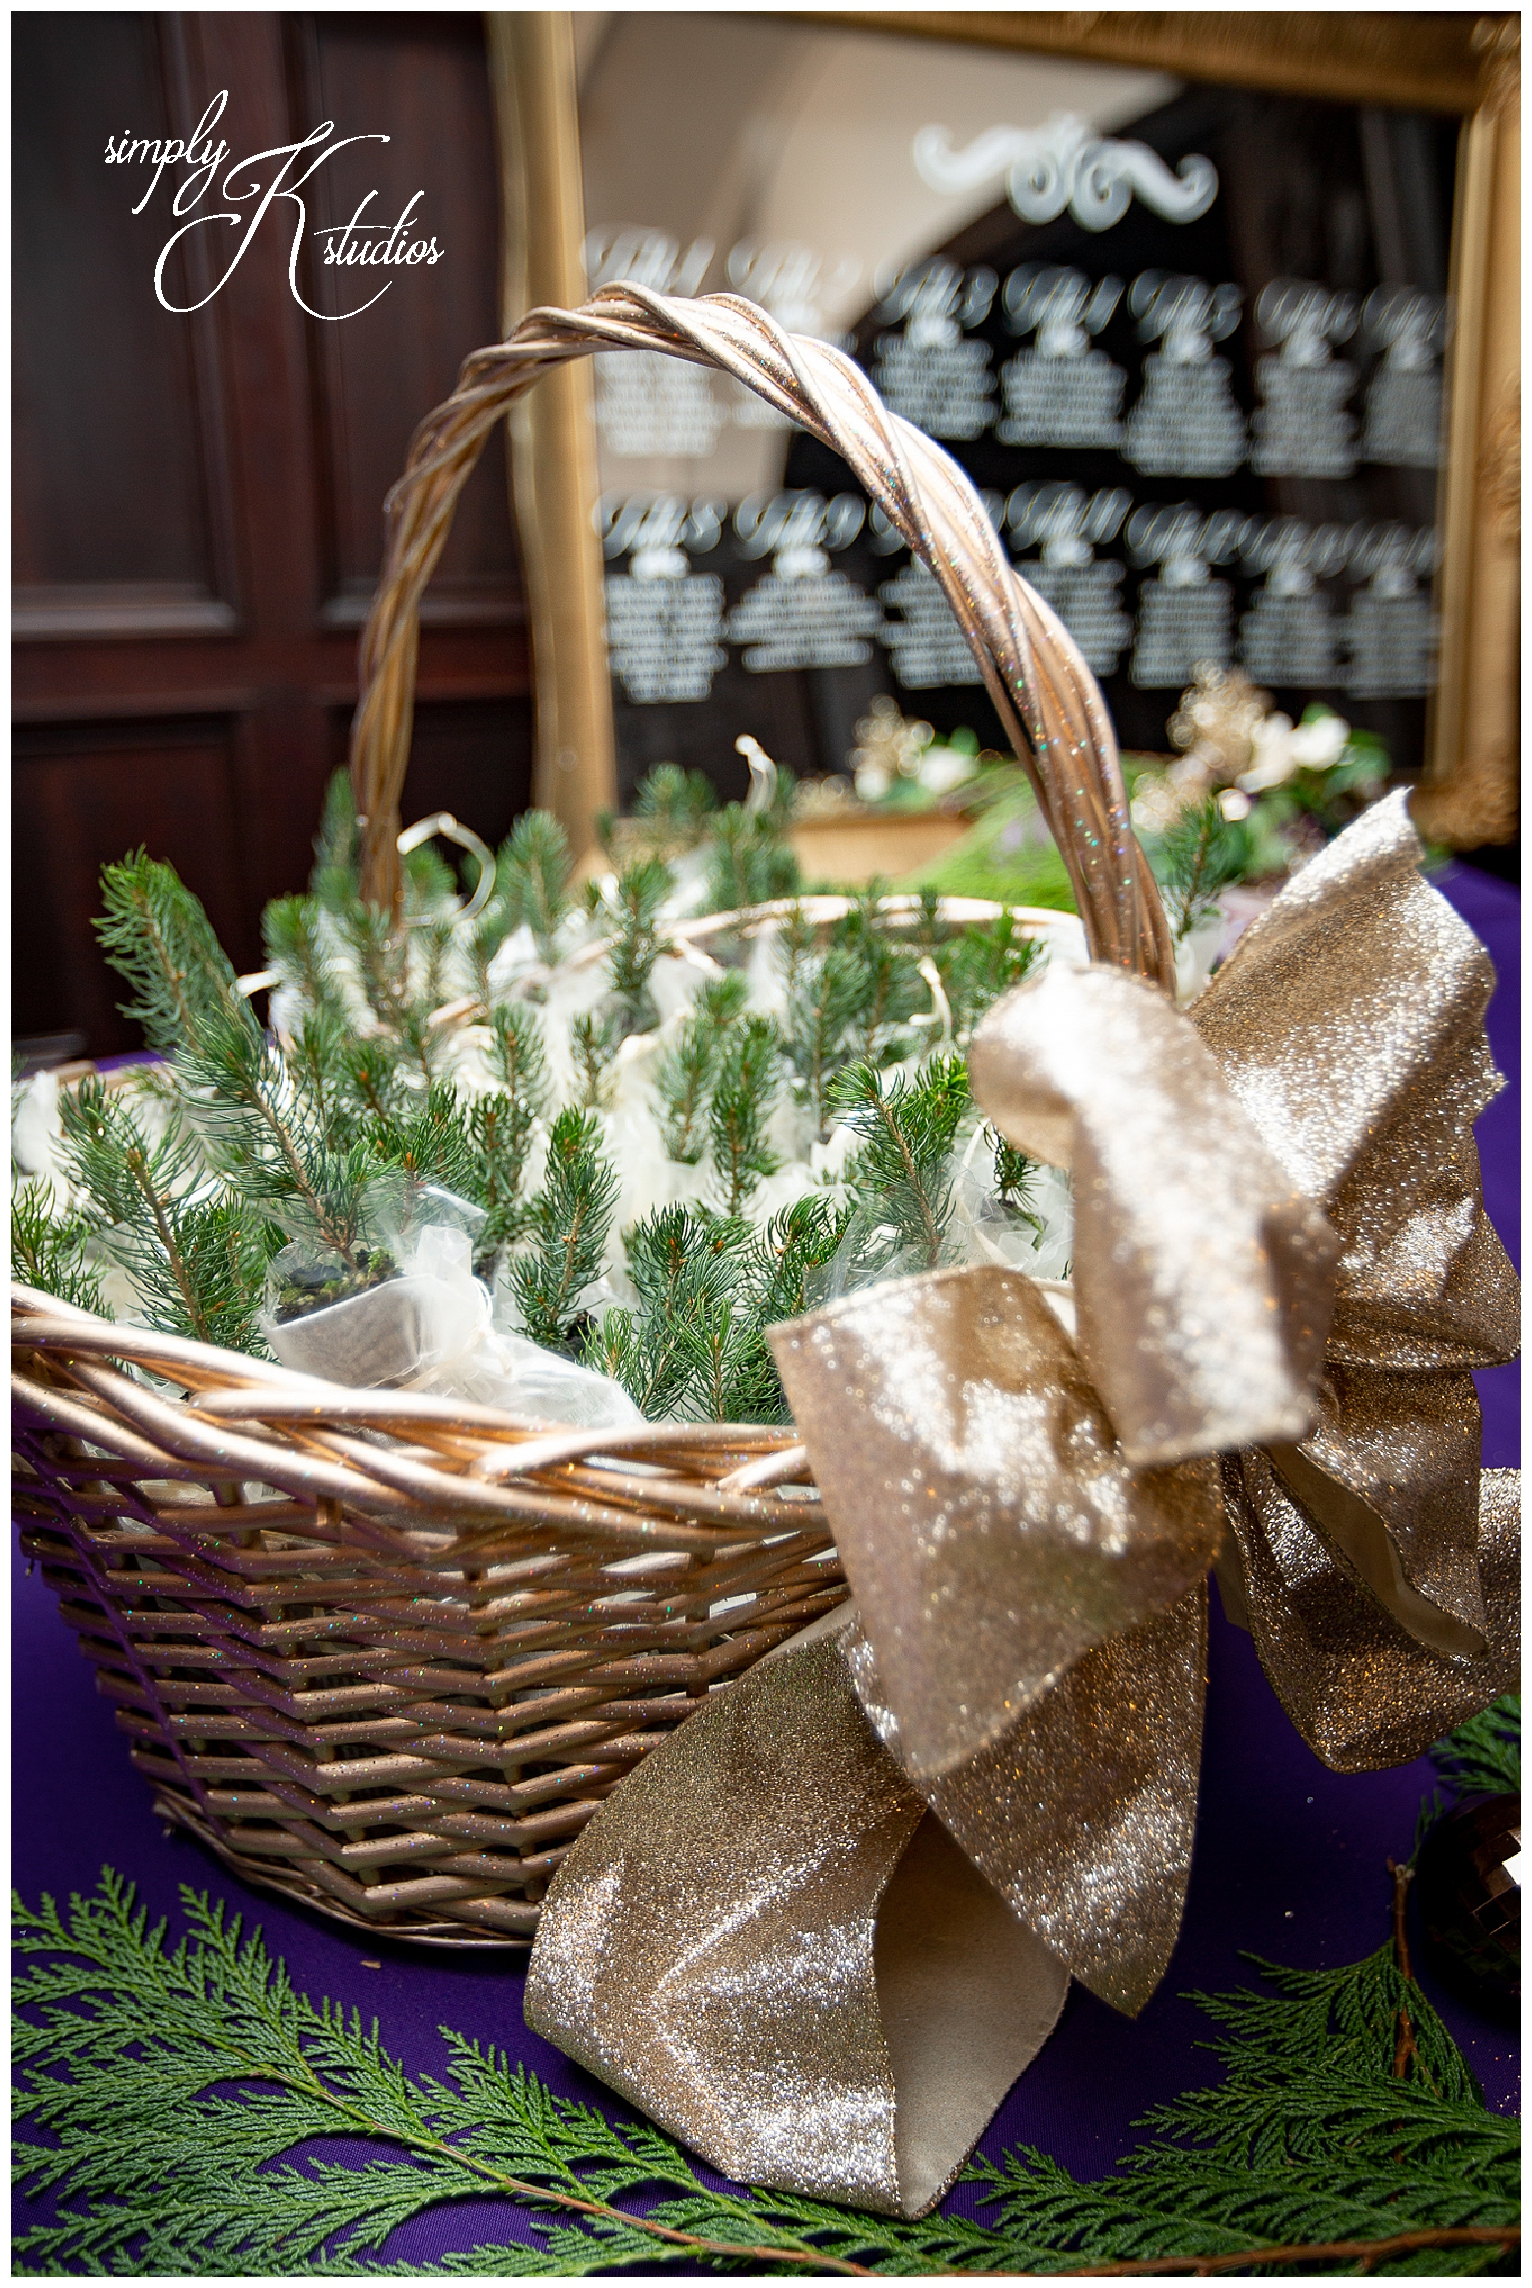 82 Winter Wedding Favors.jpg